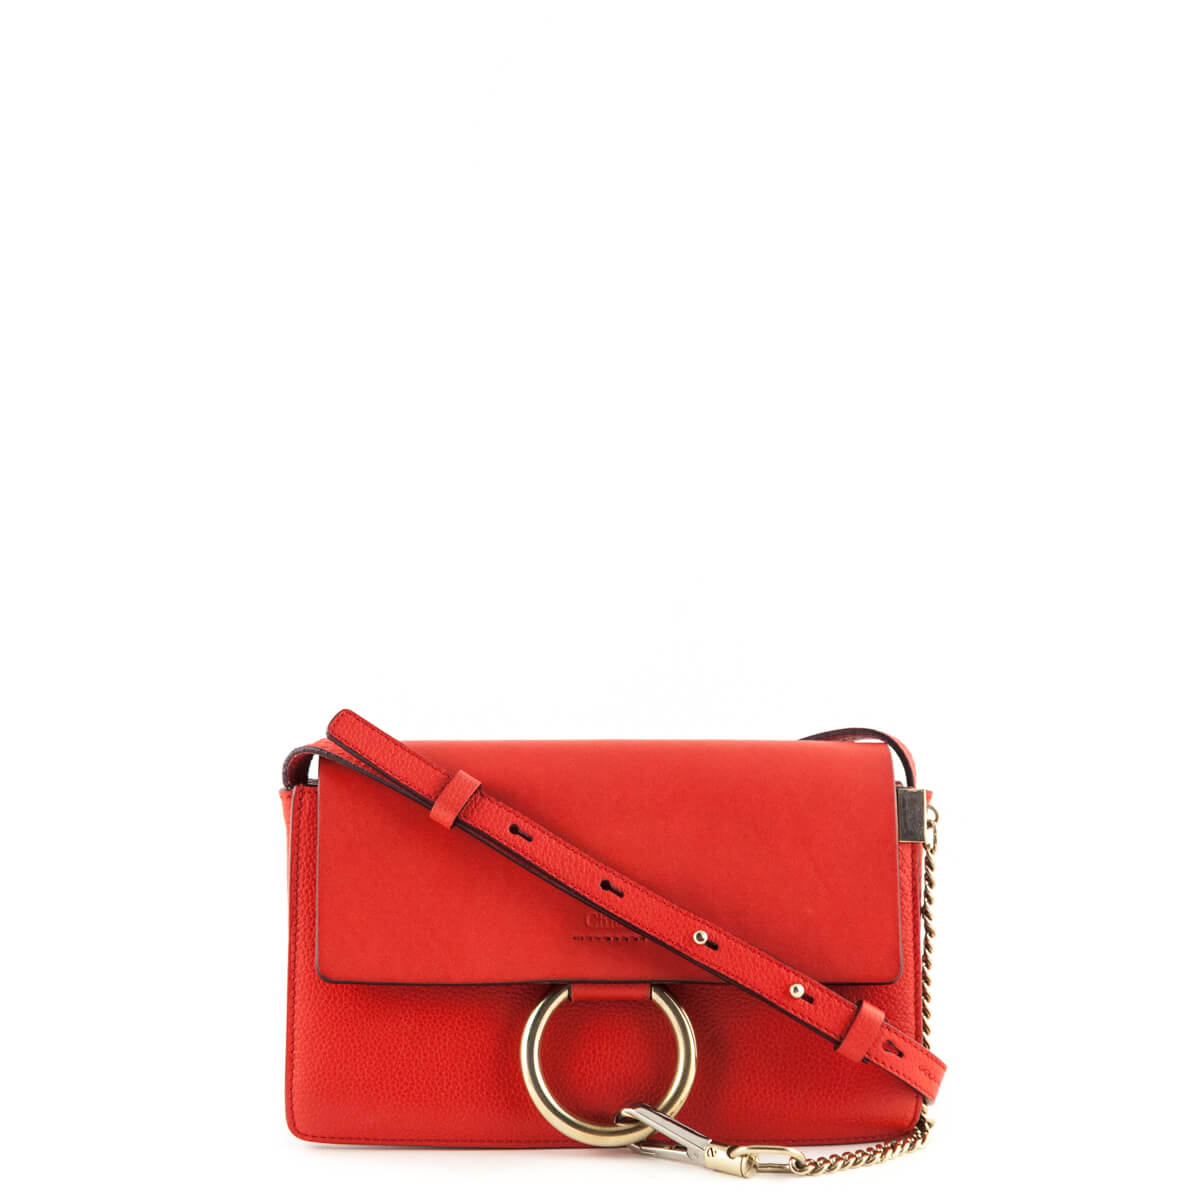 Chloe Red Calfskin   Lambskin Small Faye - LOVE that BAG - Preowned  Authentic Designer Handbags ... d2c2af54bbbc6